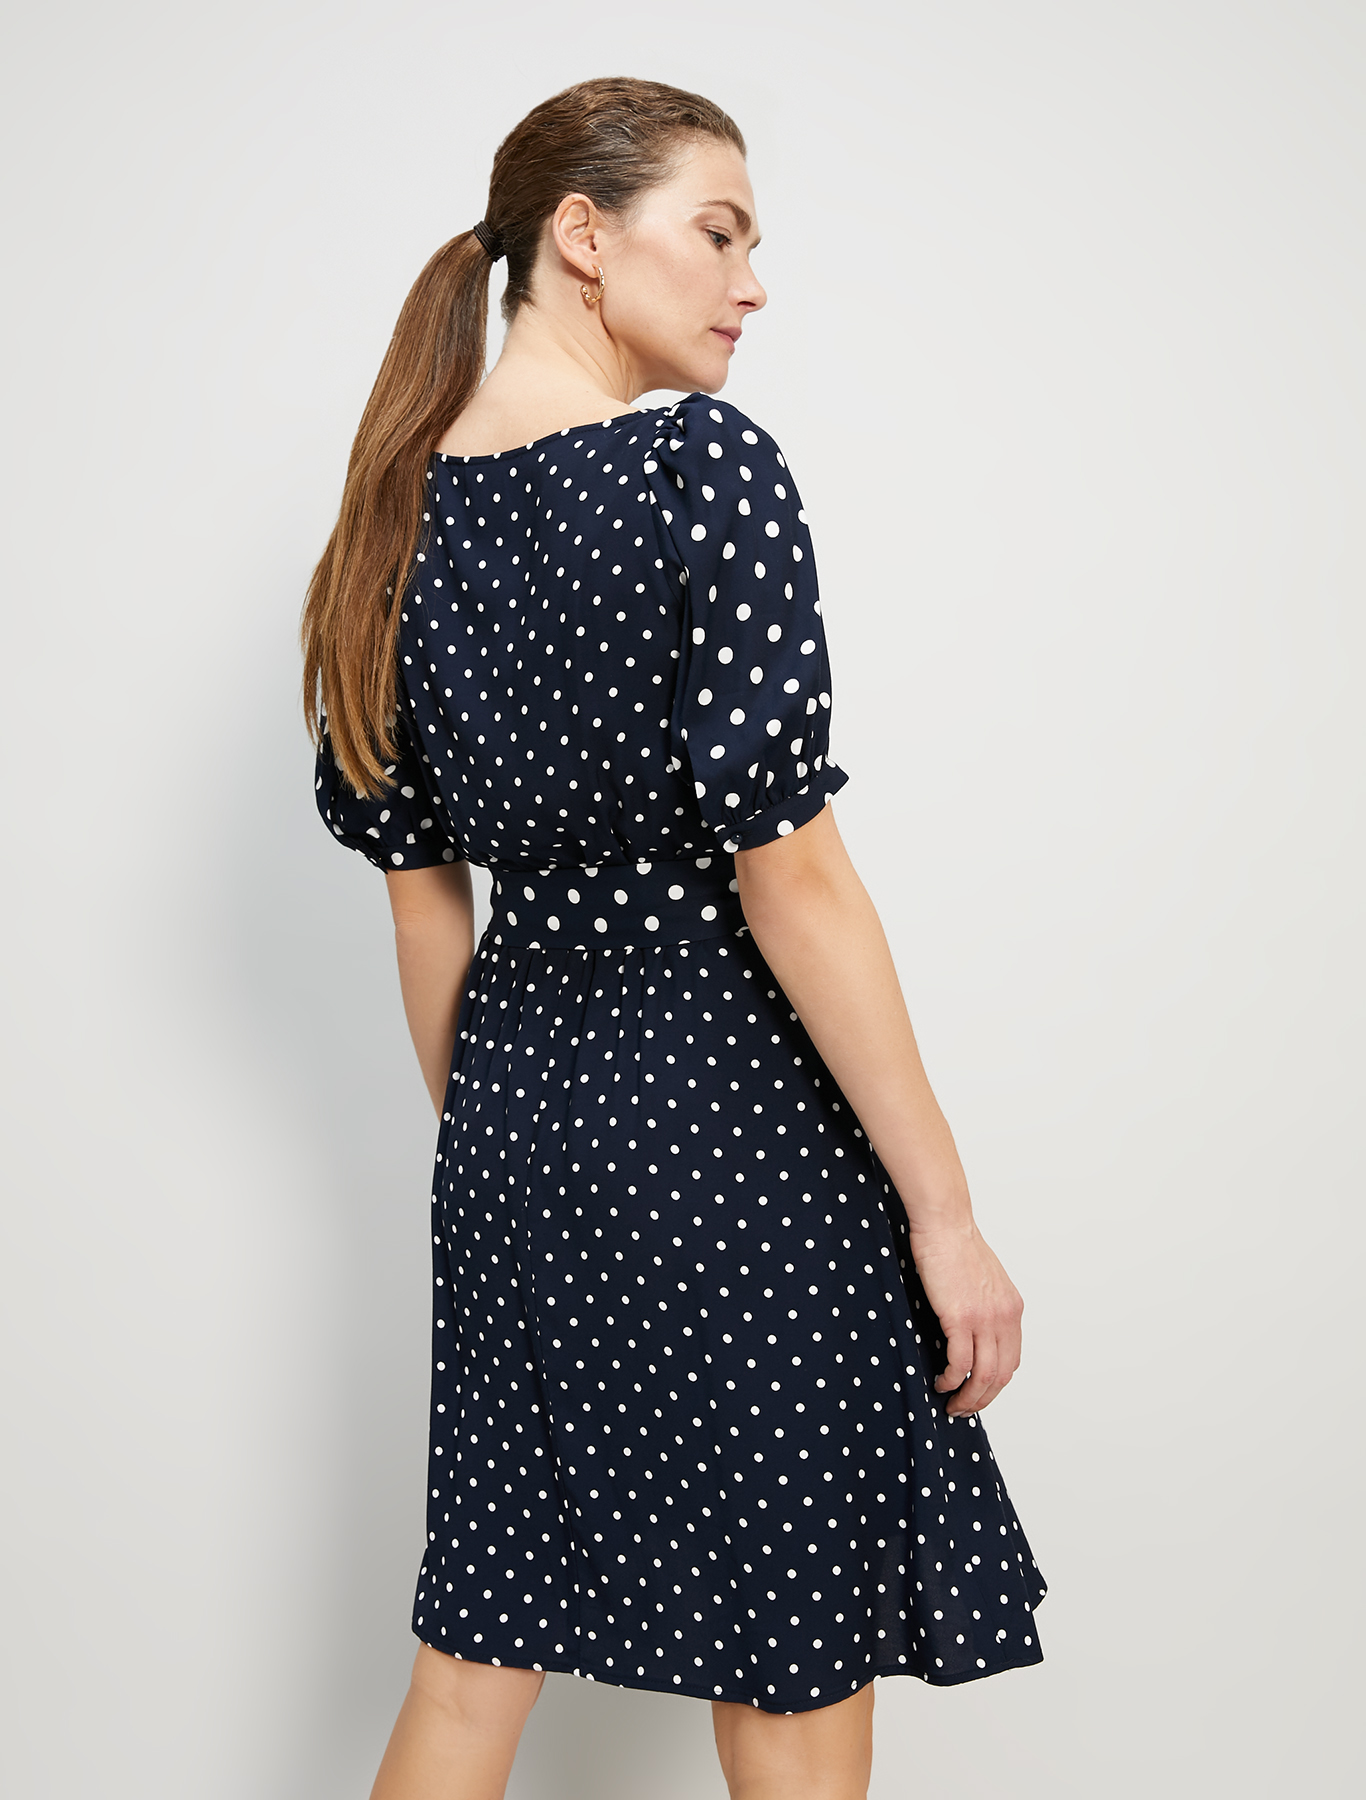 Polka dot sablé dress - navy blue pattern - pennyblack